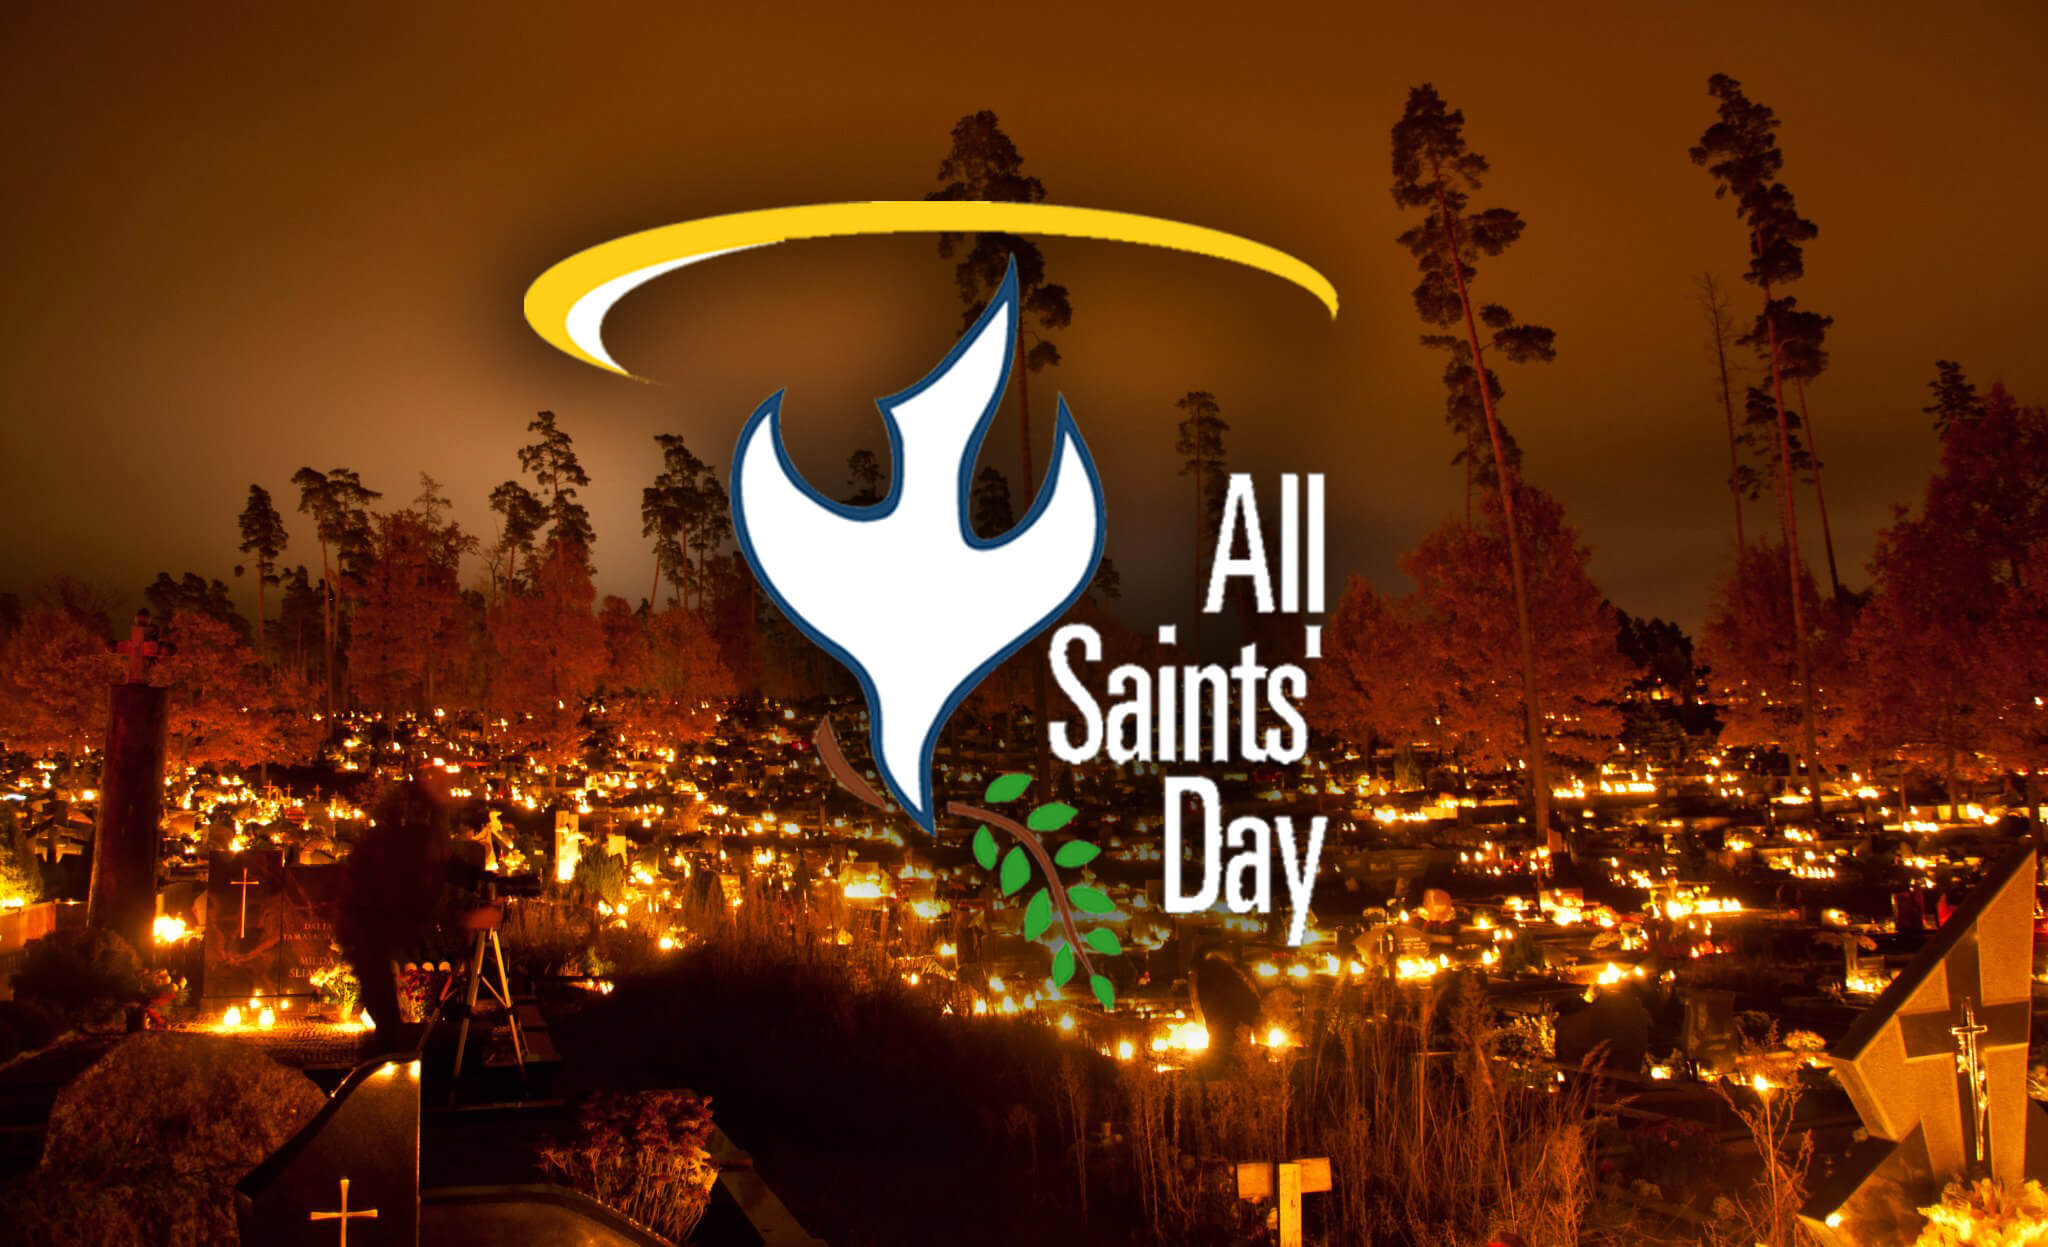 All Saints Day Wallpapers Free Download